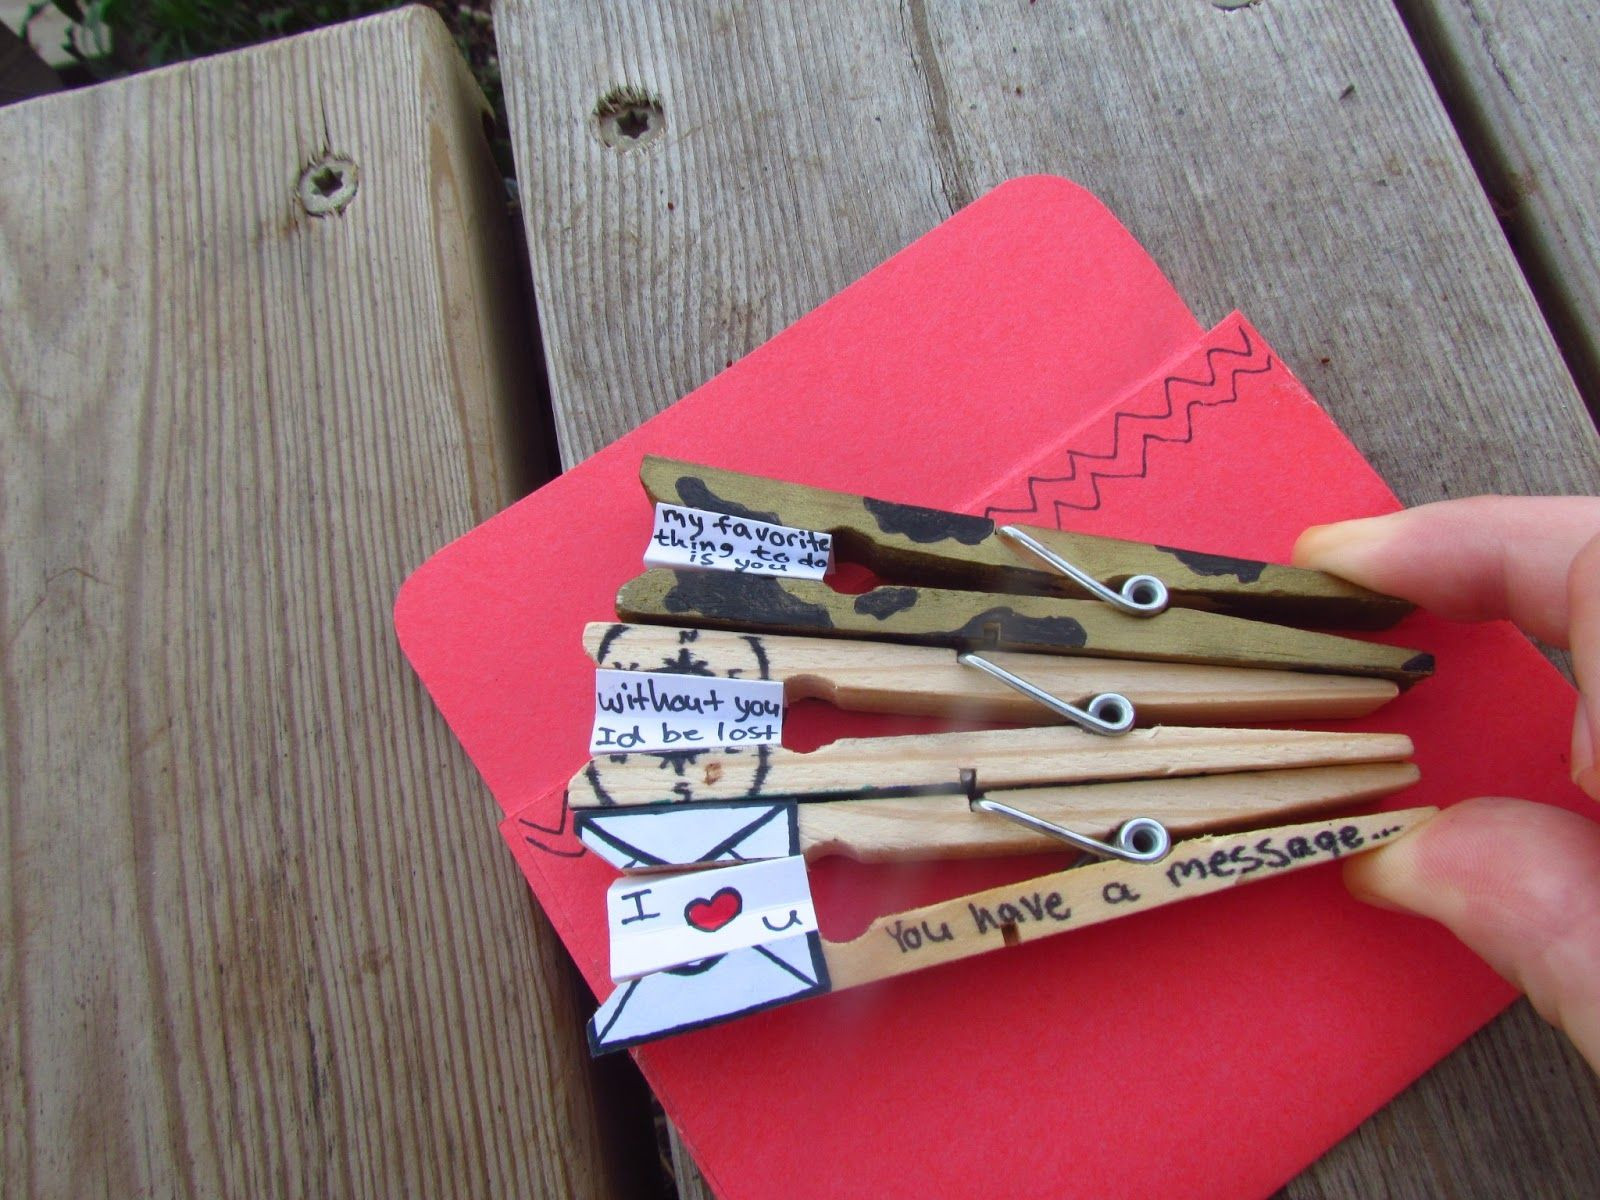 Best ideas about Diy Birthday Gift Ideas For Boyfriend . Save or Pin creative ts for your boyfriend Now.